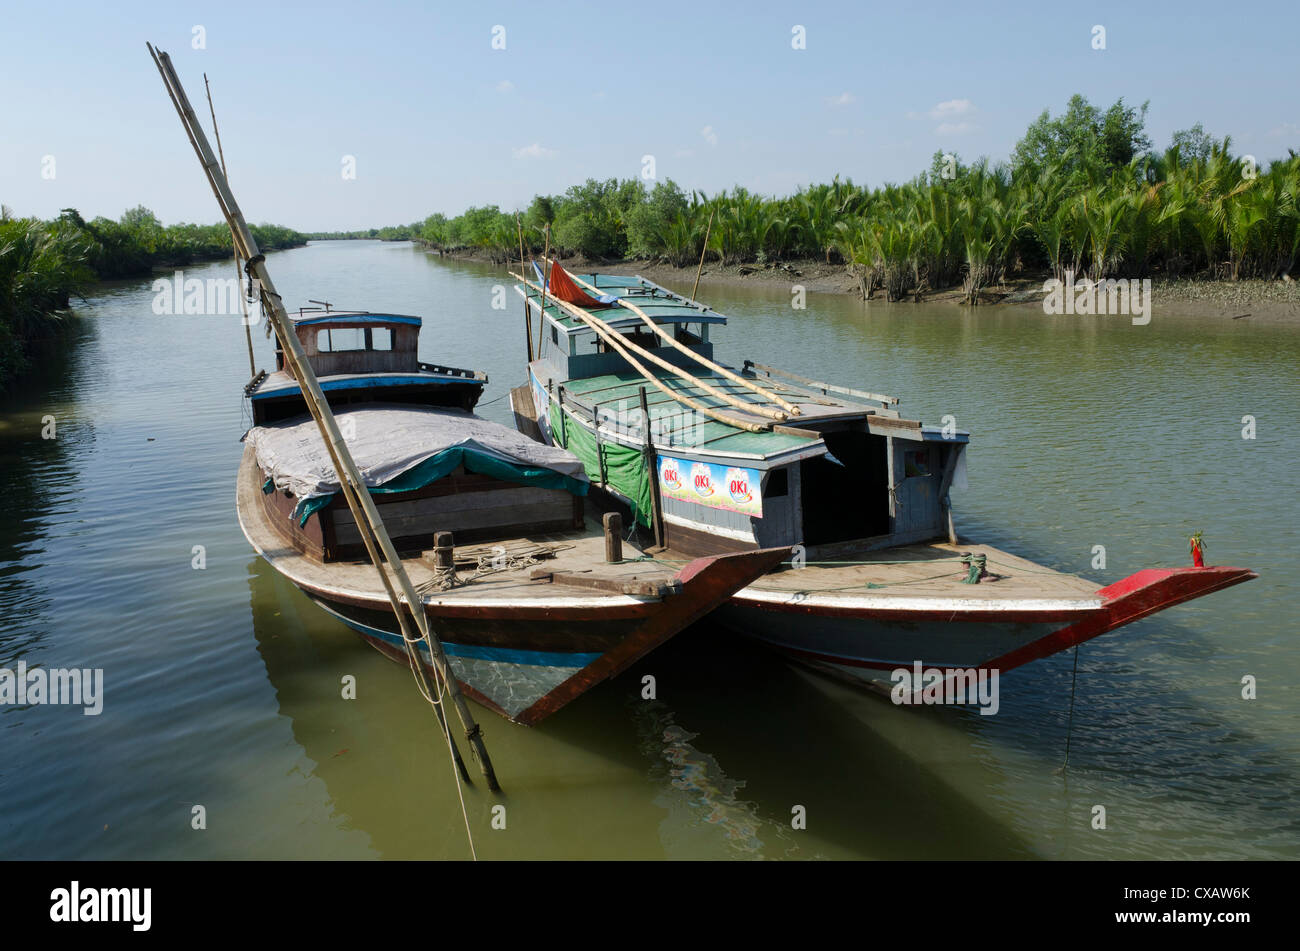 Boats in a waterway with mangrove trees, Irrawaddy Delta, Myanmar (Burma), Asia - Stock Image